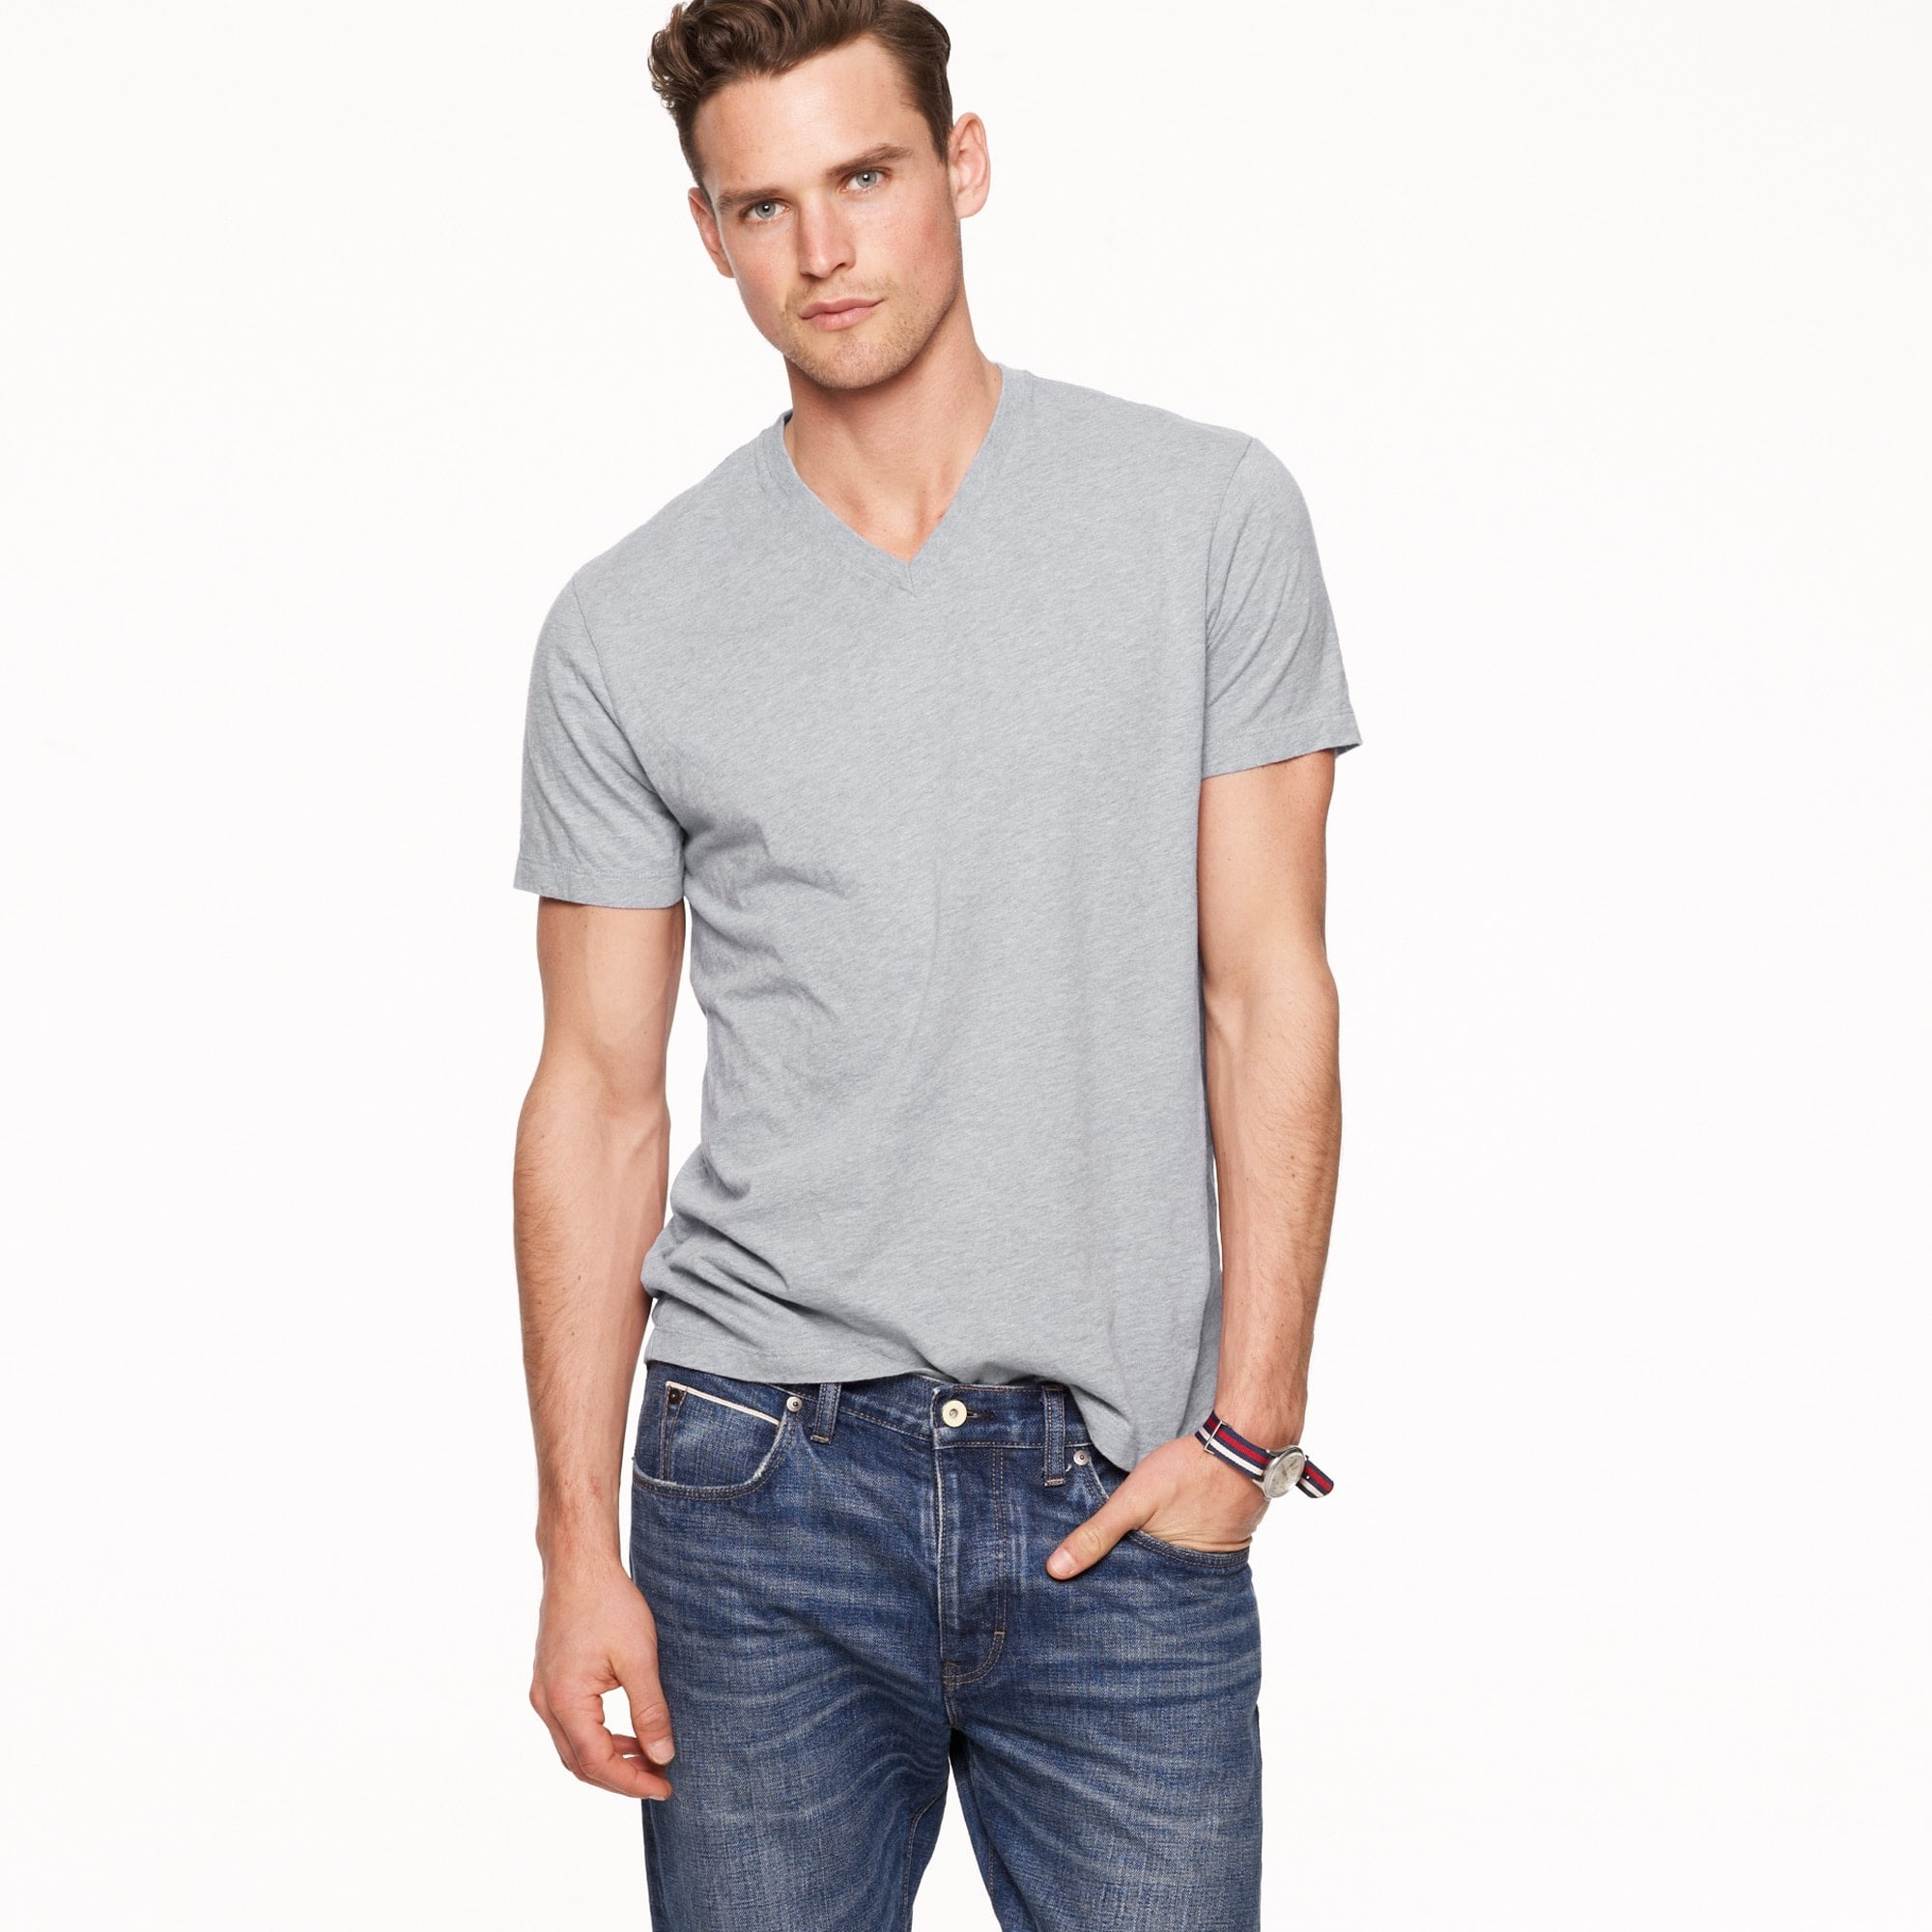 Image 1 for Slim J.Crew Mercantile Broken-in V-neck T-shirt in heather grey